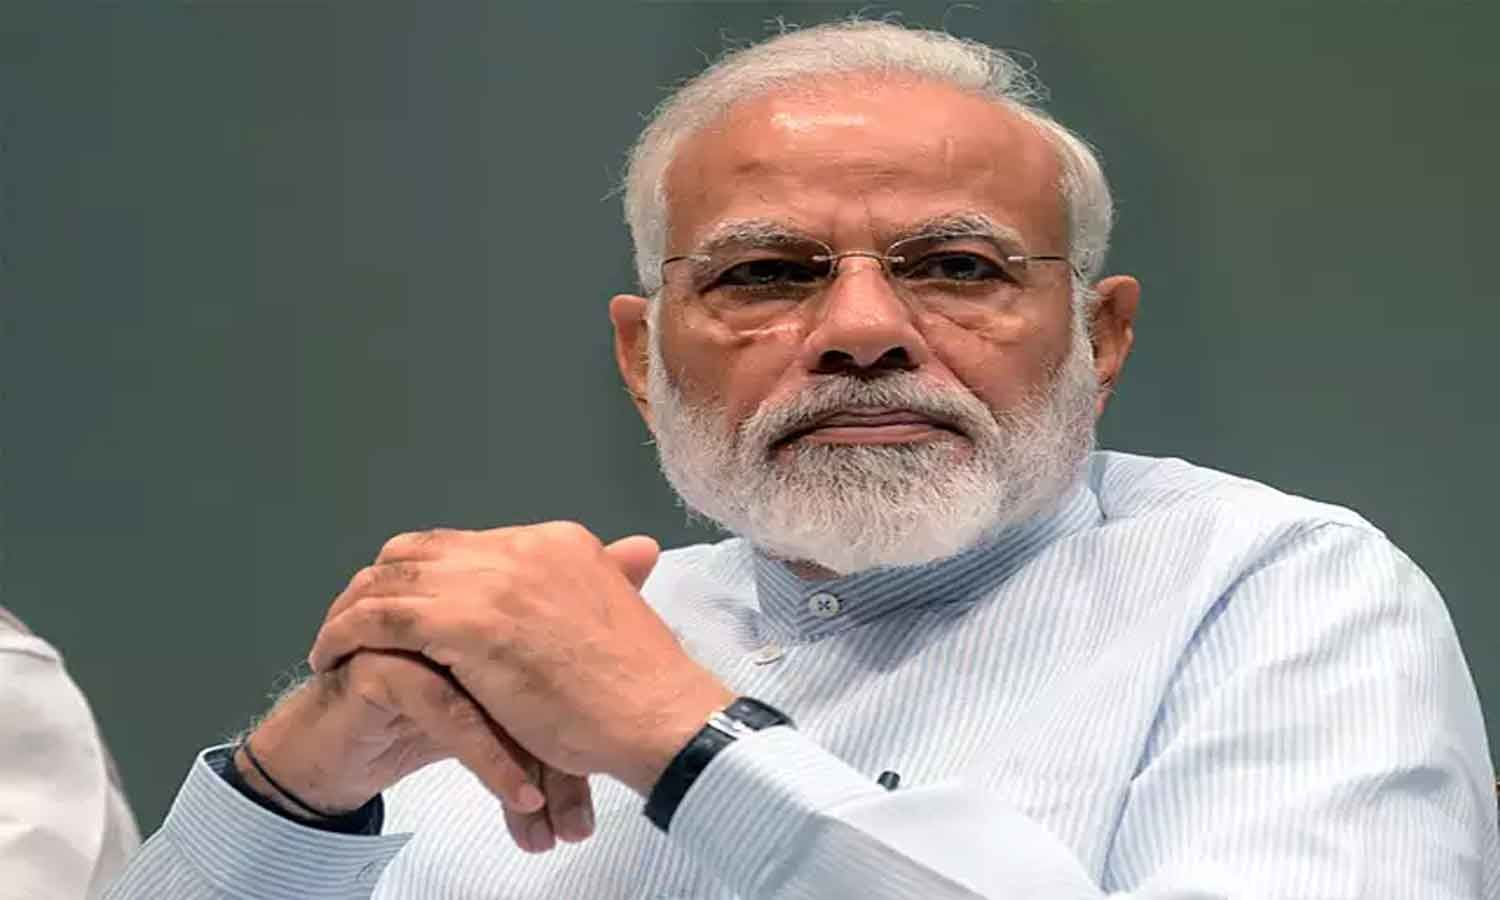 Coronavirus epidemic battle: PM Modi interacts with MBBS student evacuated from China, Pune nurse